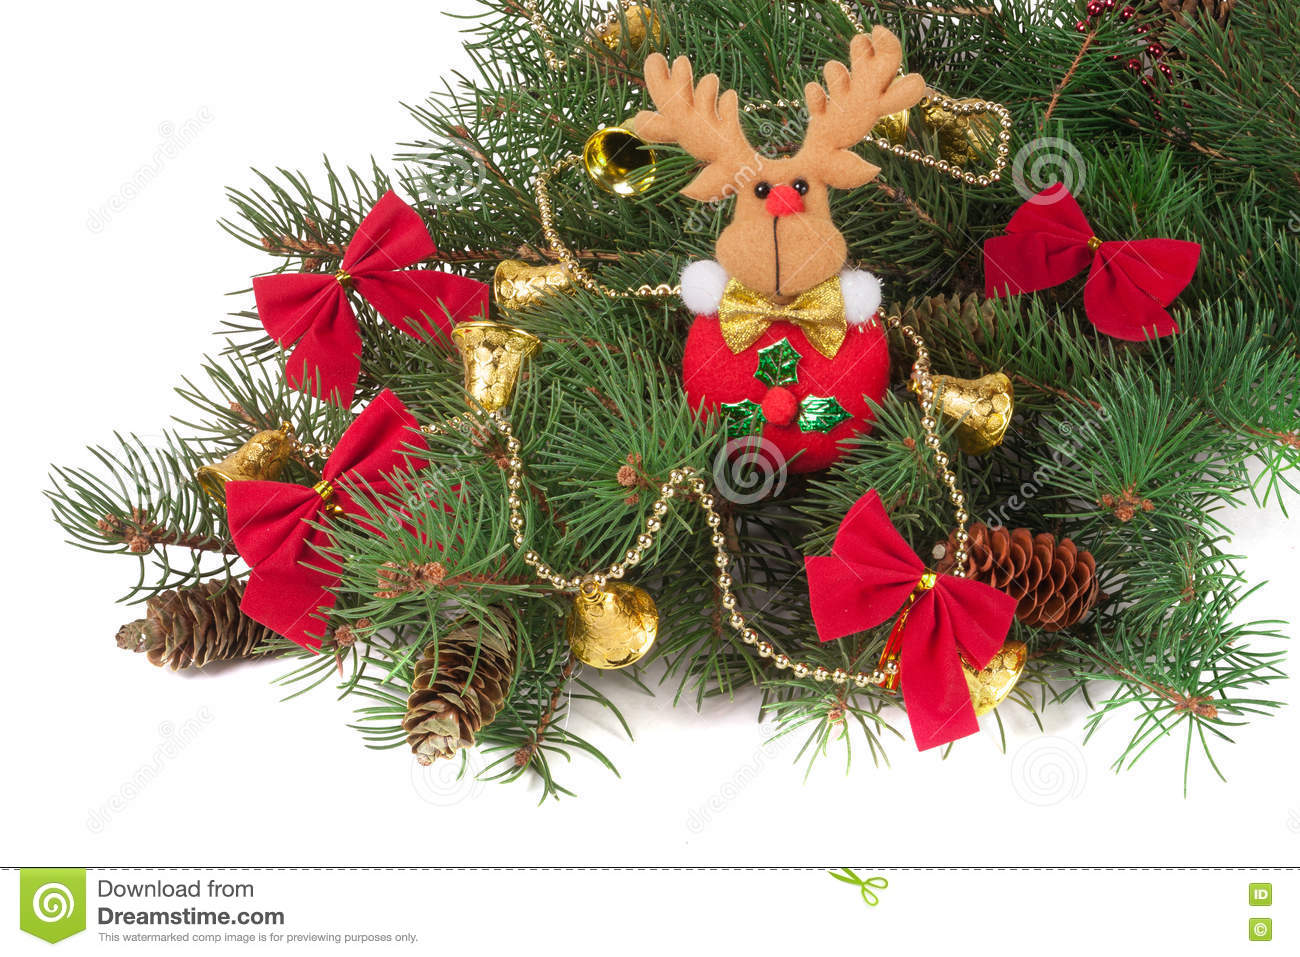 Decorated Christmas fir branch isolated on white background